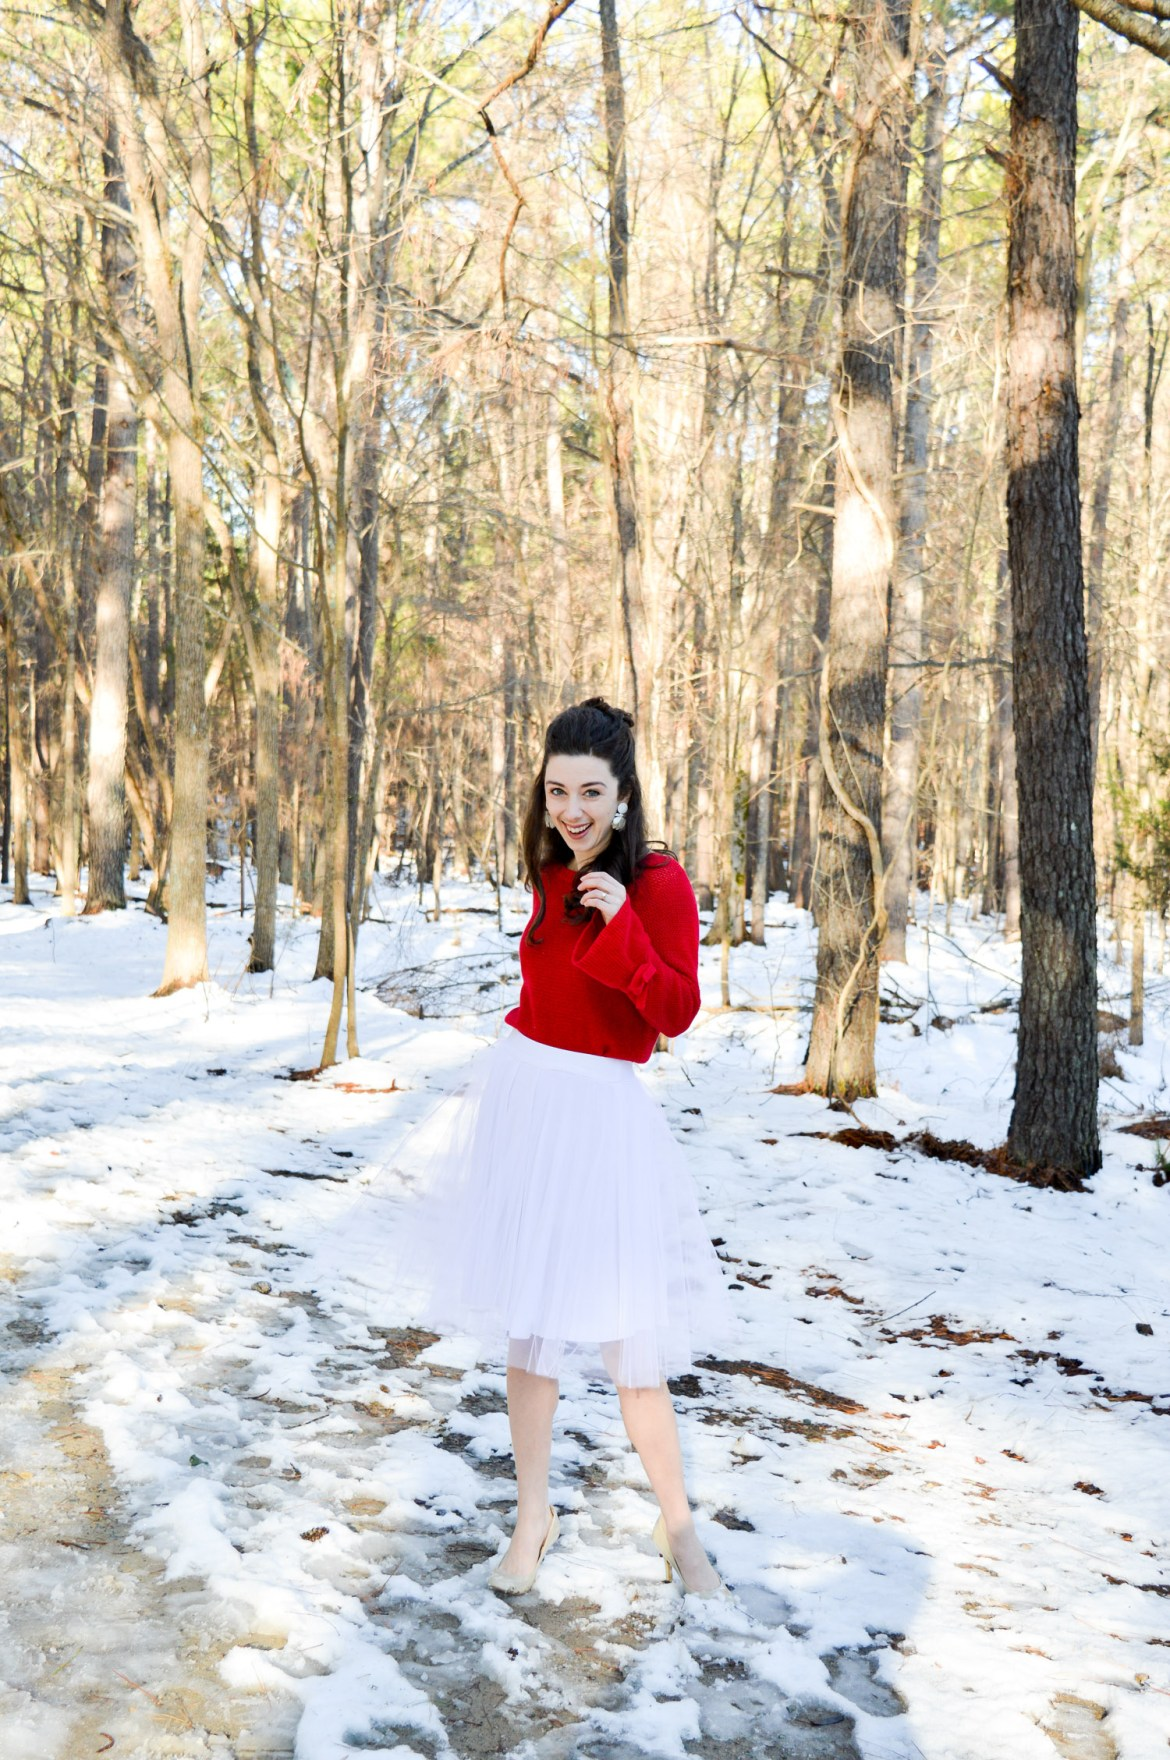 Styling your tulle skirt for the winter // Pair it with a sweater